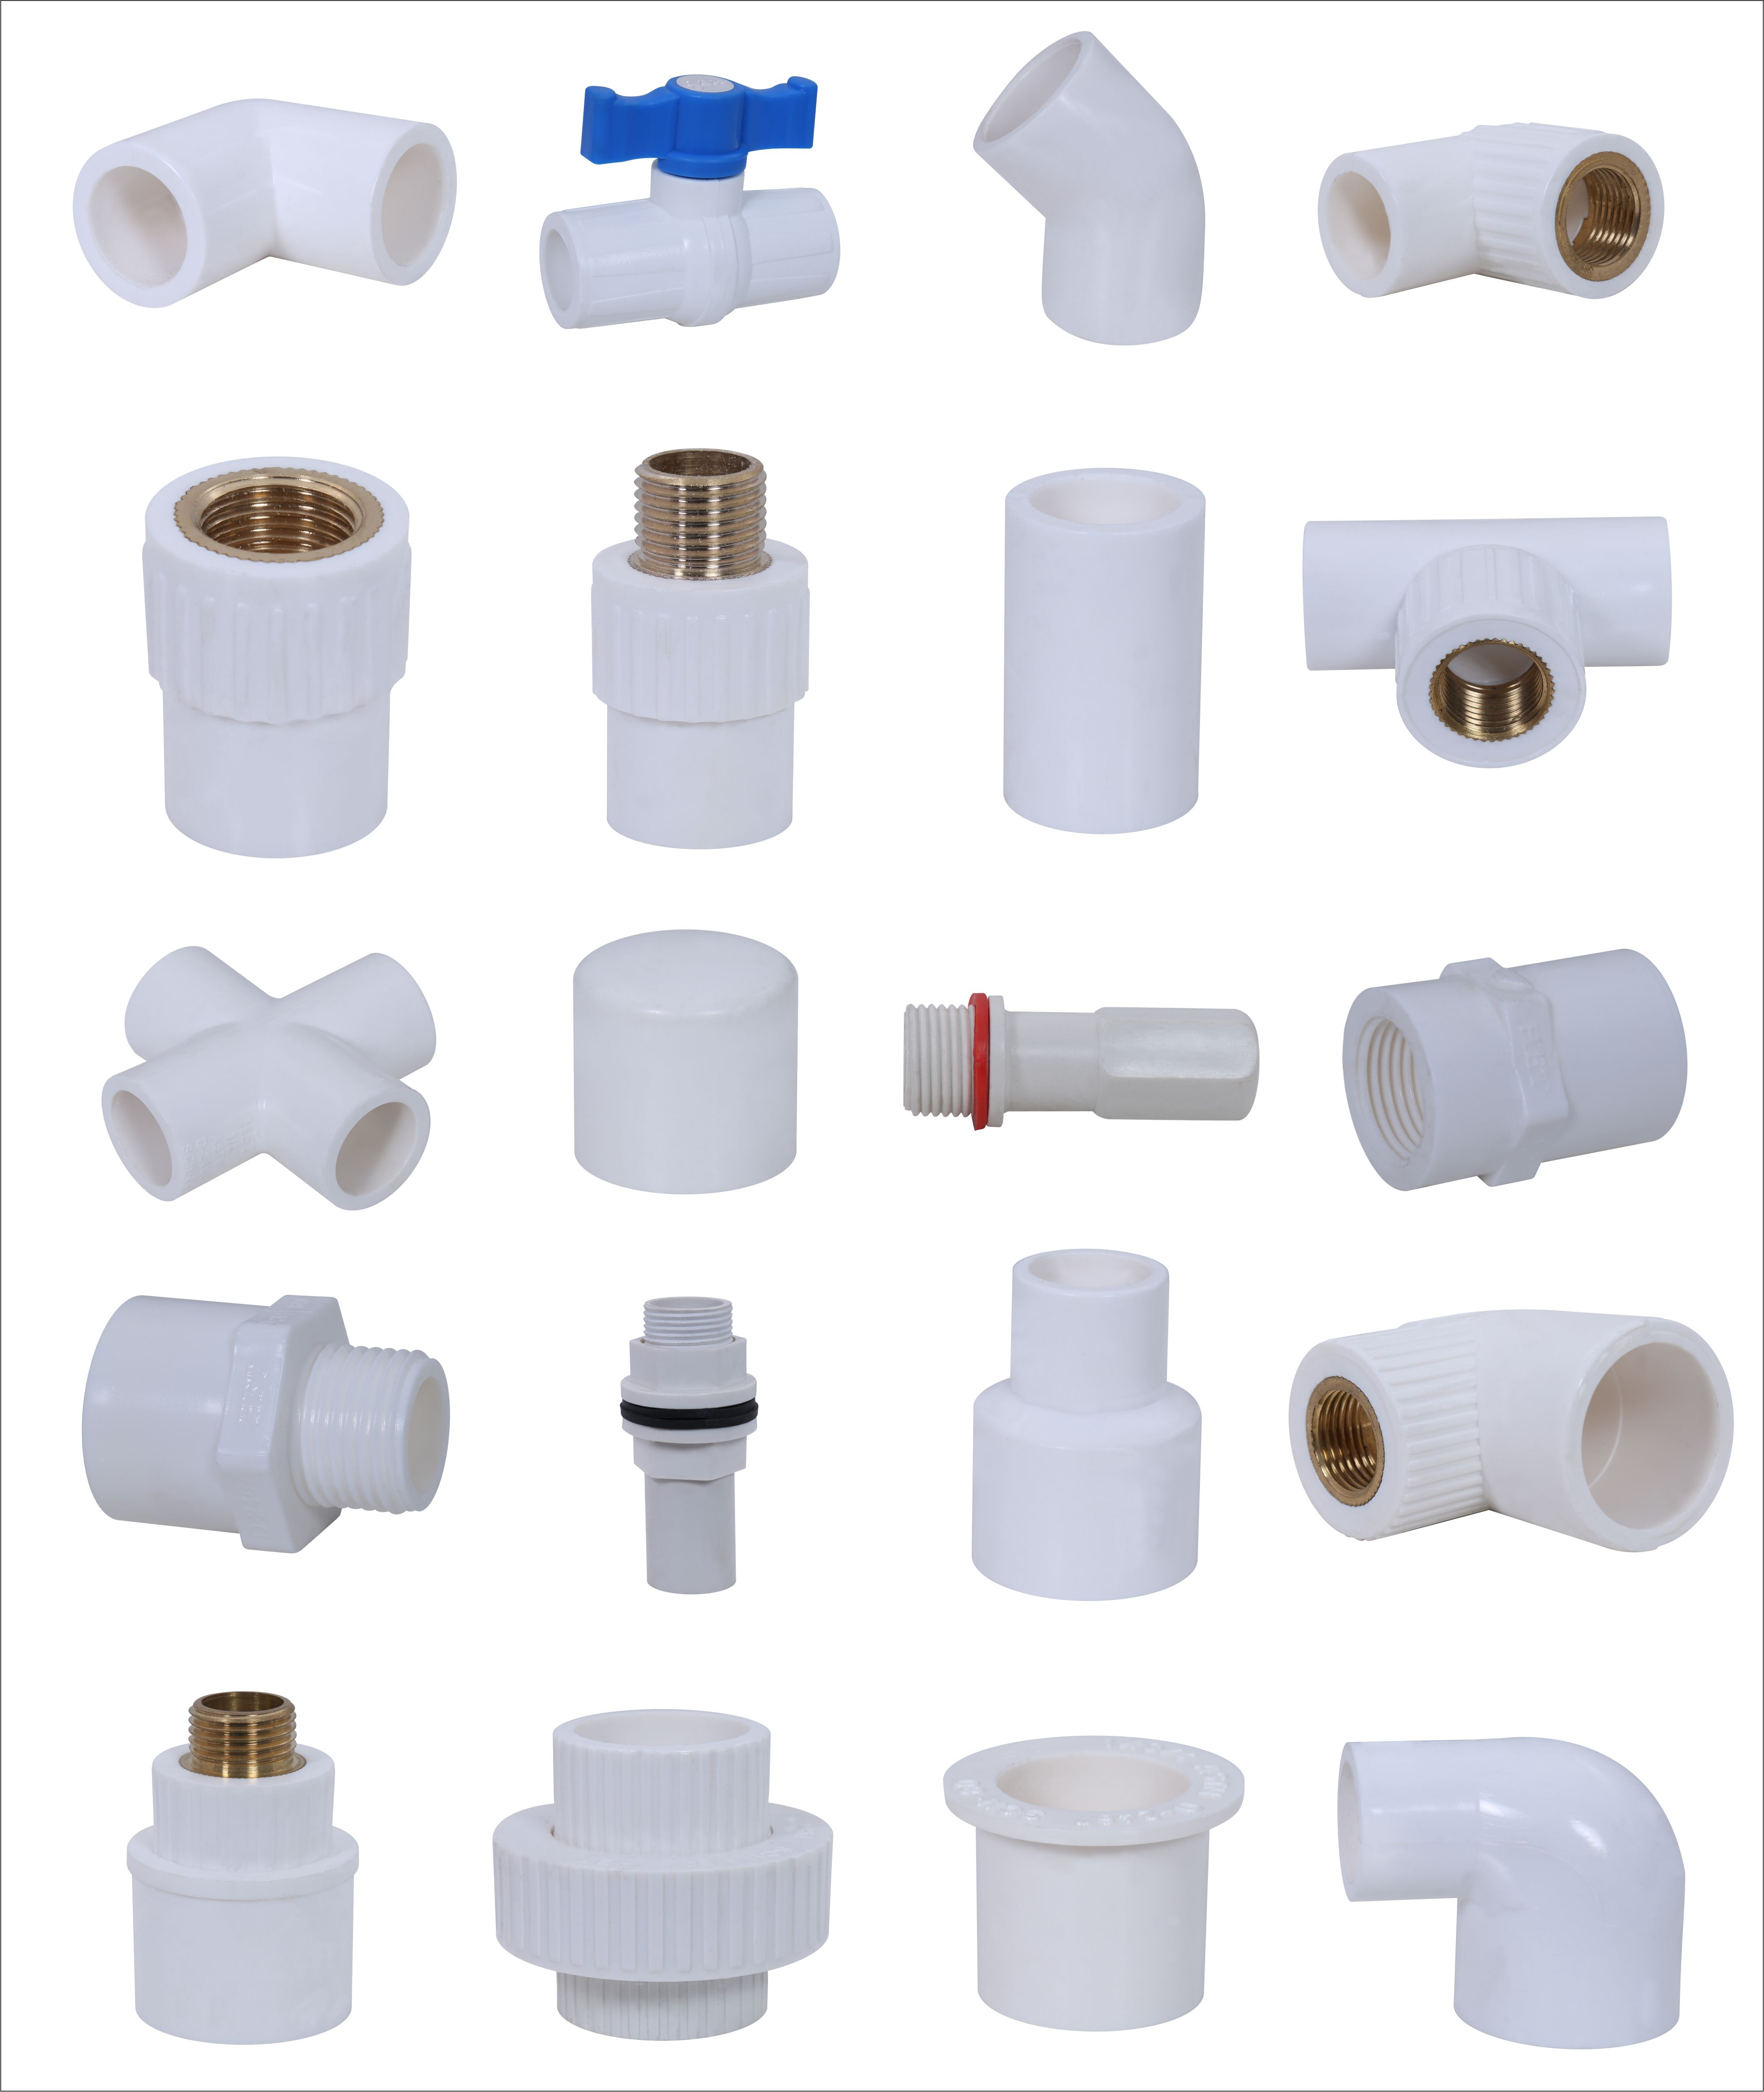 Upvc Pipe Fitting Ashok Plastic Pinterest China Pvc Electrical For Conduit Wiring Photos Pictures Made